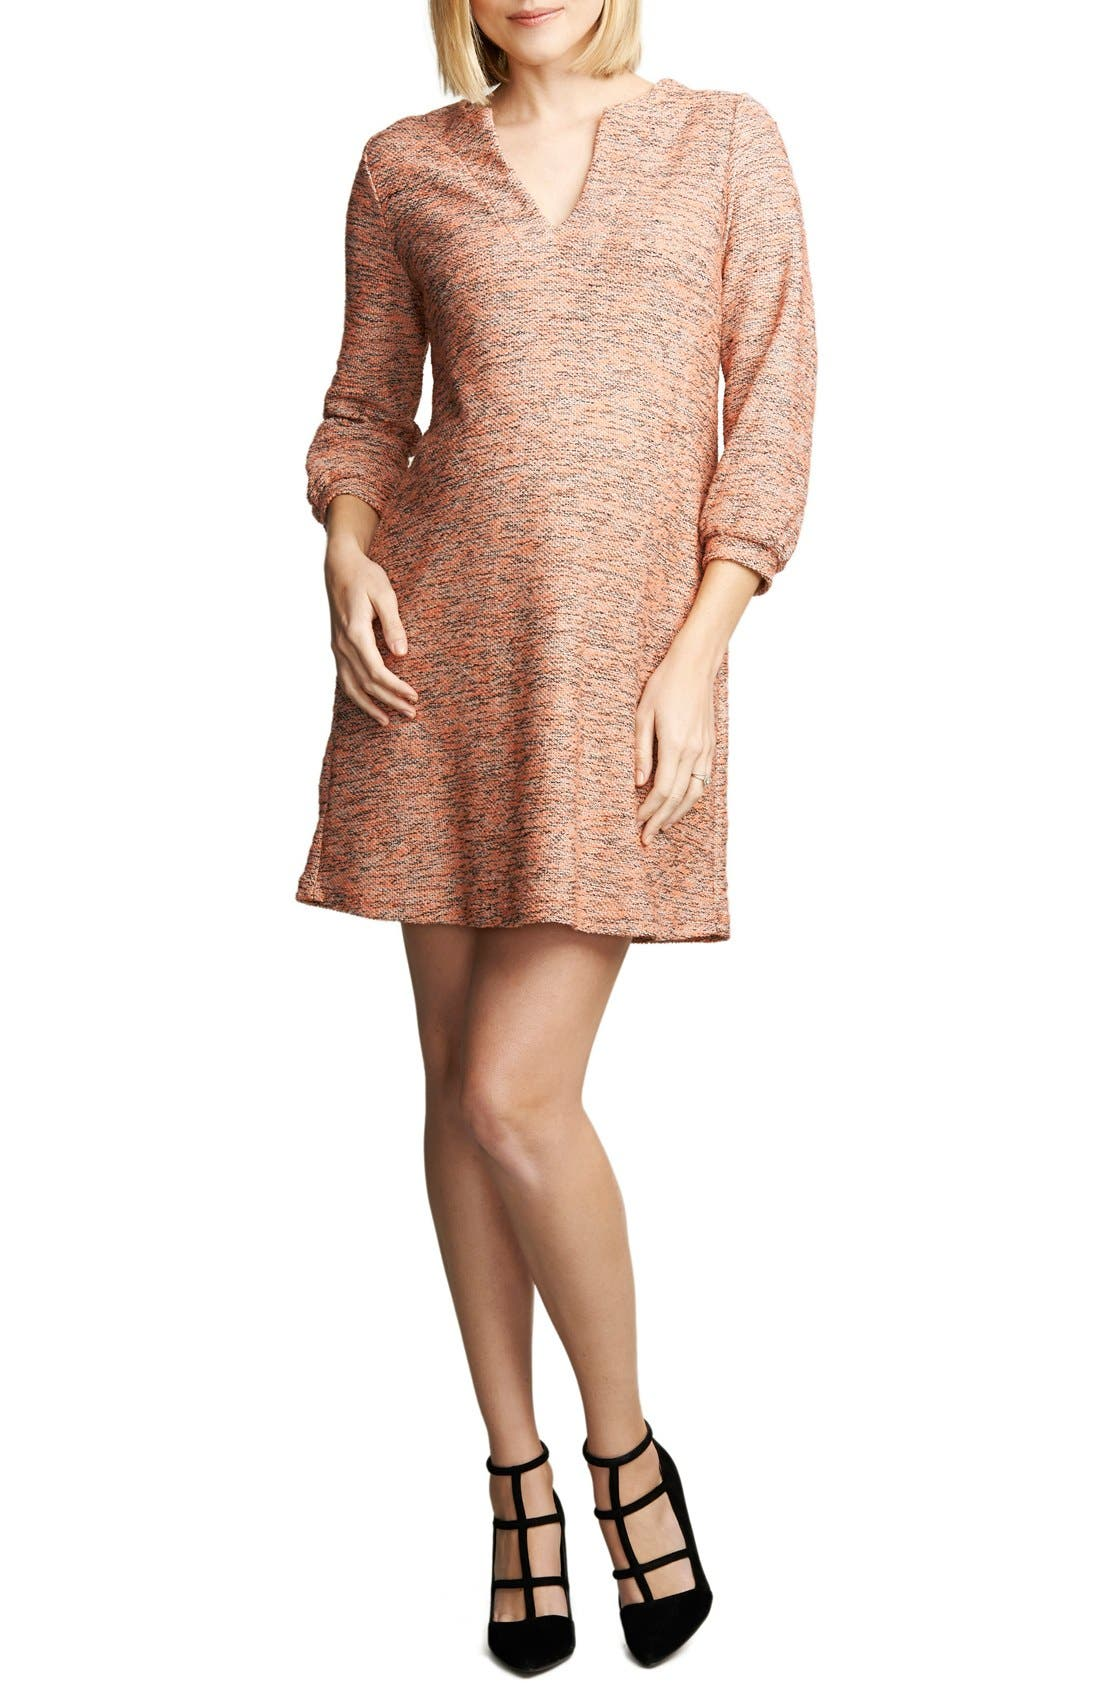 Shift Maternity Dress,                             Main thumbnail 1, color,                             PINK BOUCLE